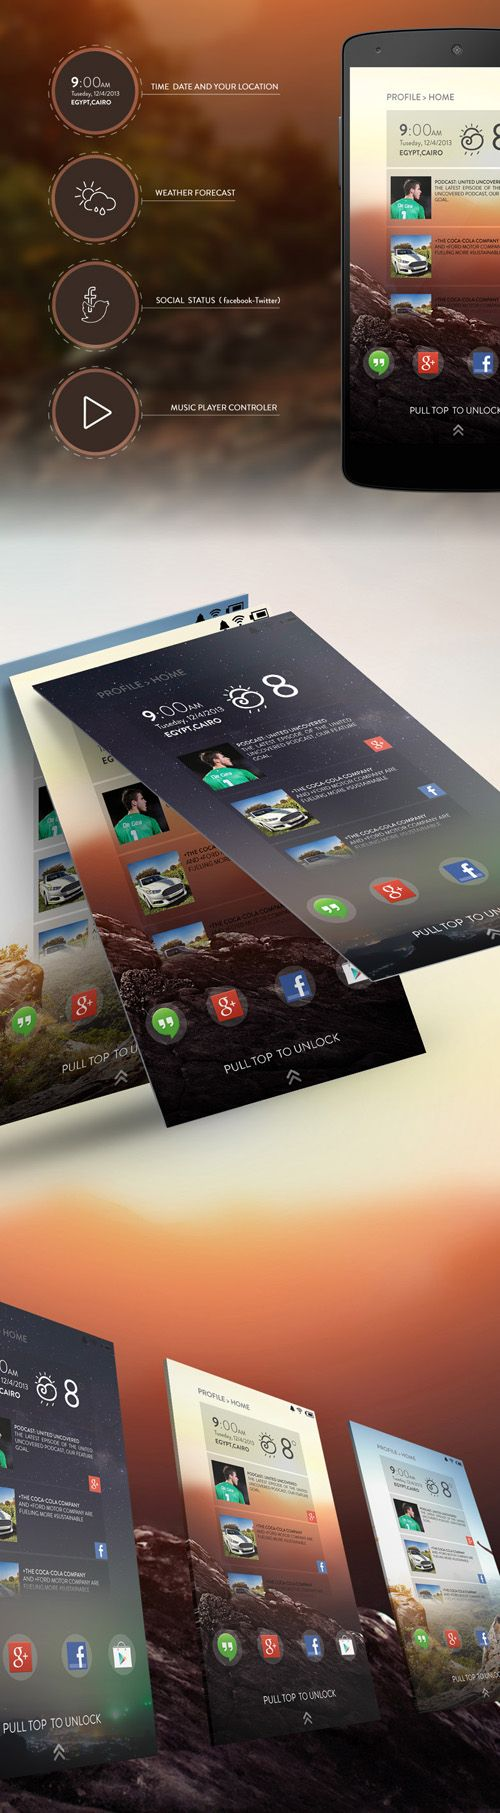 Android Lock-screen UI Design Concepts to Boost User Experience